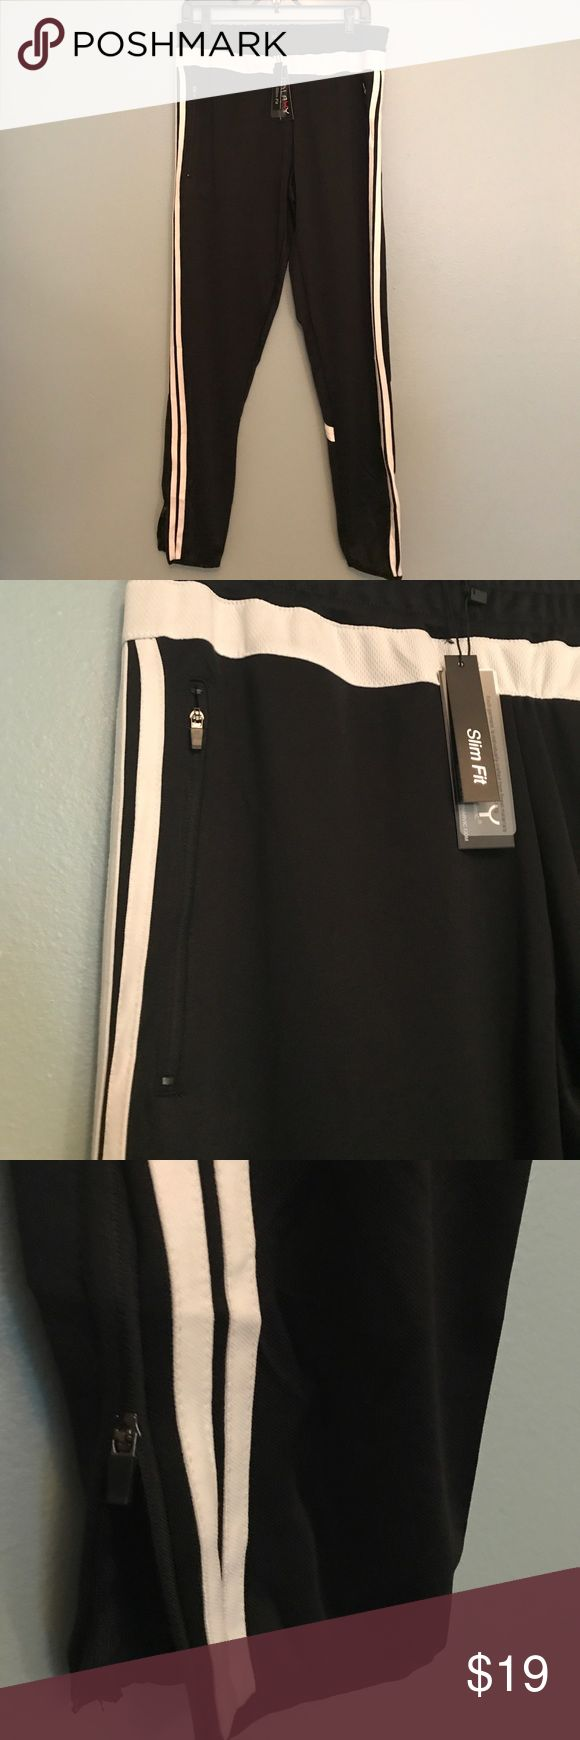 Galaxy Men's Joggers Sz Medium New with tags's men's slim fit joggers my galaxy. Regular retail $49.50. 100% polyester, drawstring waist to zip side pockets zipper at ankle. Black and white joggers Galaxy by Harvic Pants Sweatpants & Joggers